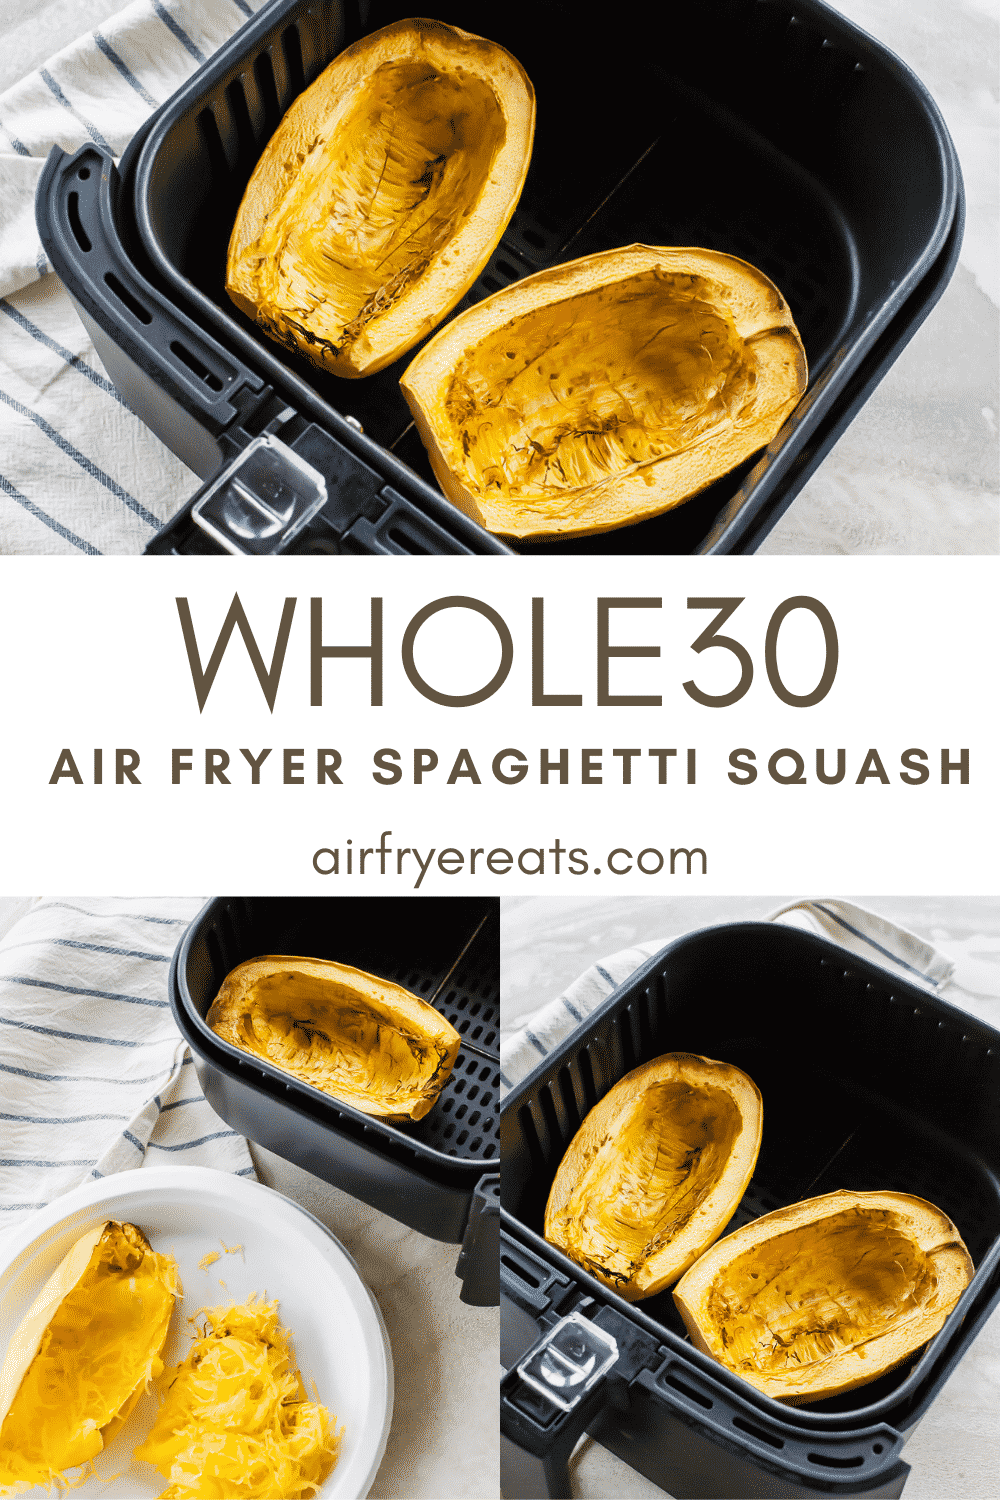 This Air Fryer Spaghetti Squash is just ONE ingredient and can be the base for so many main or side dishes! Make this your own a million different ways with seasonings, proteins, and sauces! #spaghettisquash #airfryerspaghettisquash #vegan via @vegetarianmamma